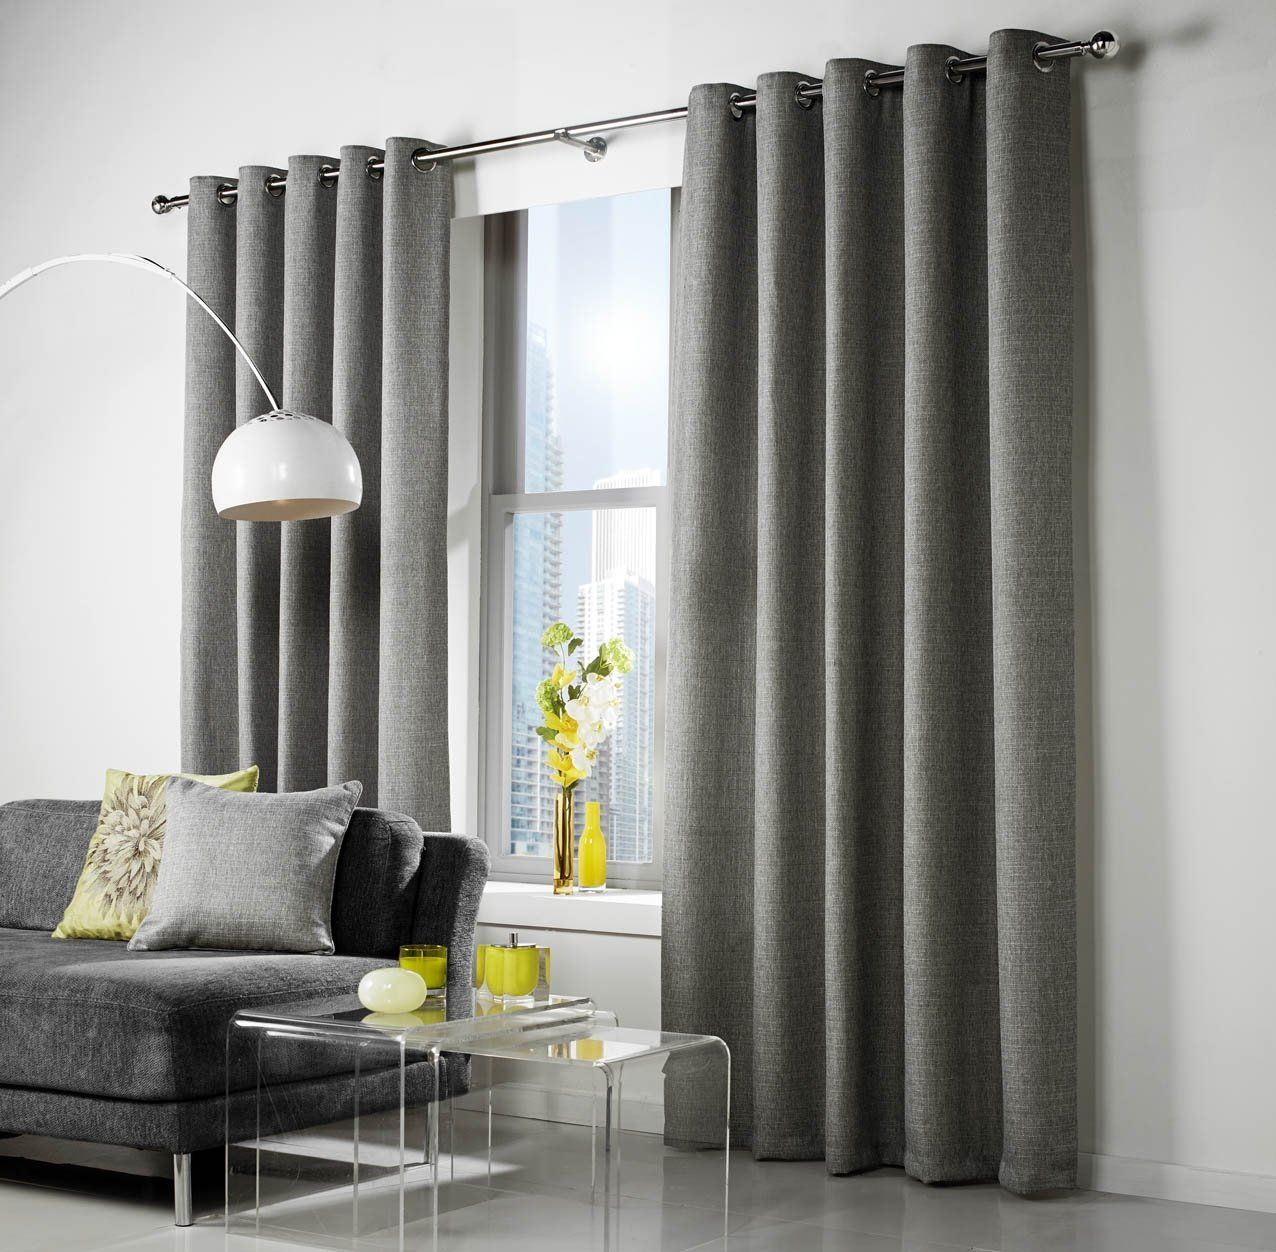 Linen Tweed Look Lined Curtains Grey Dove Gray Silver Eyelet Top 46 66 90 108 Ideal